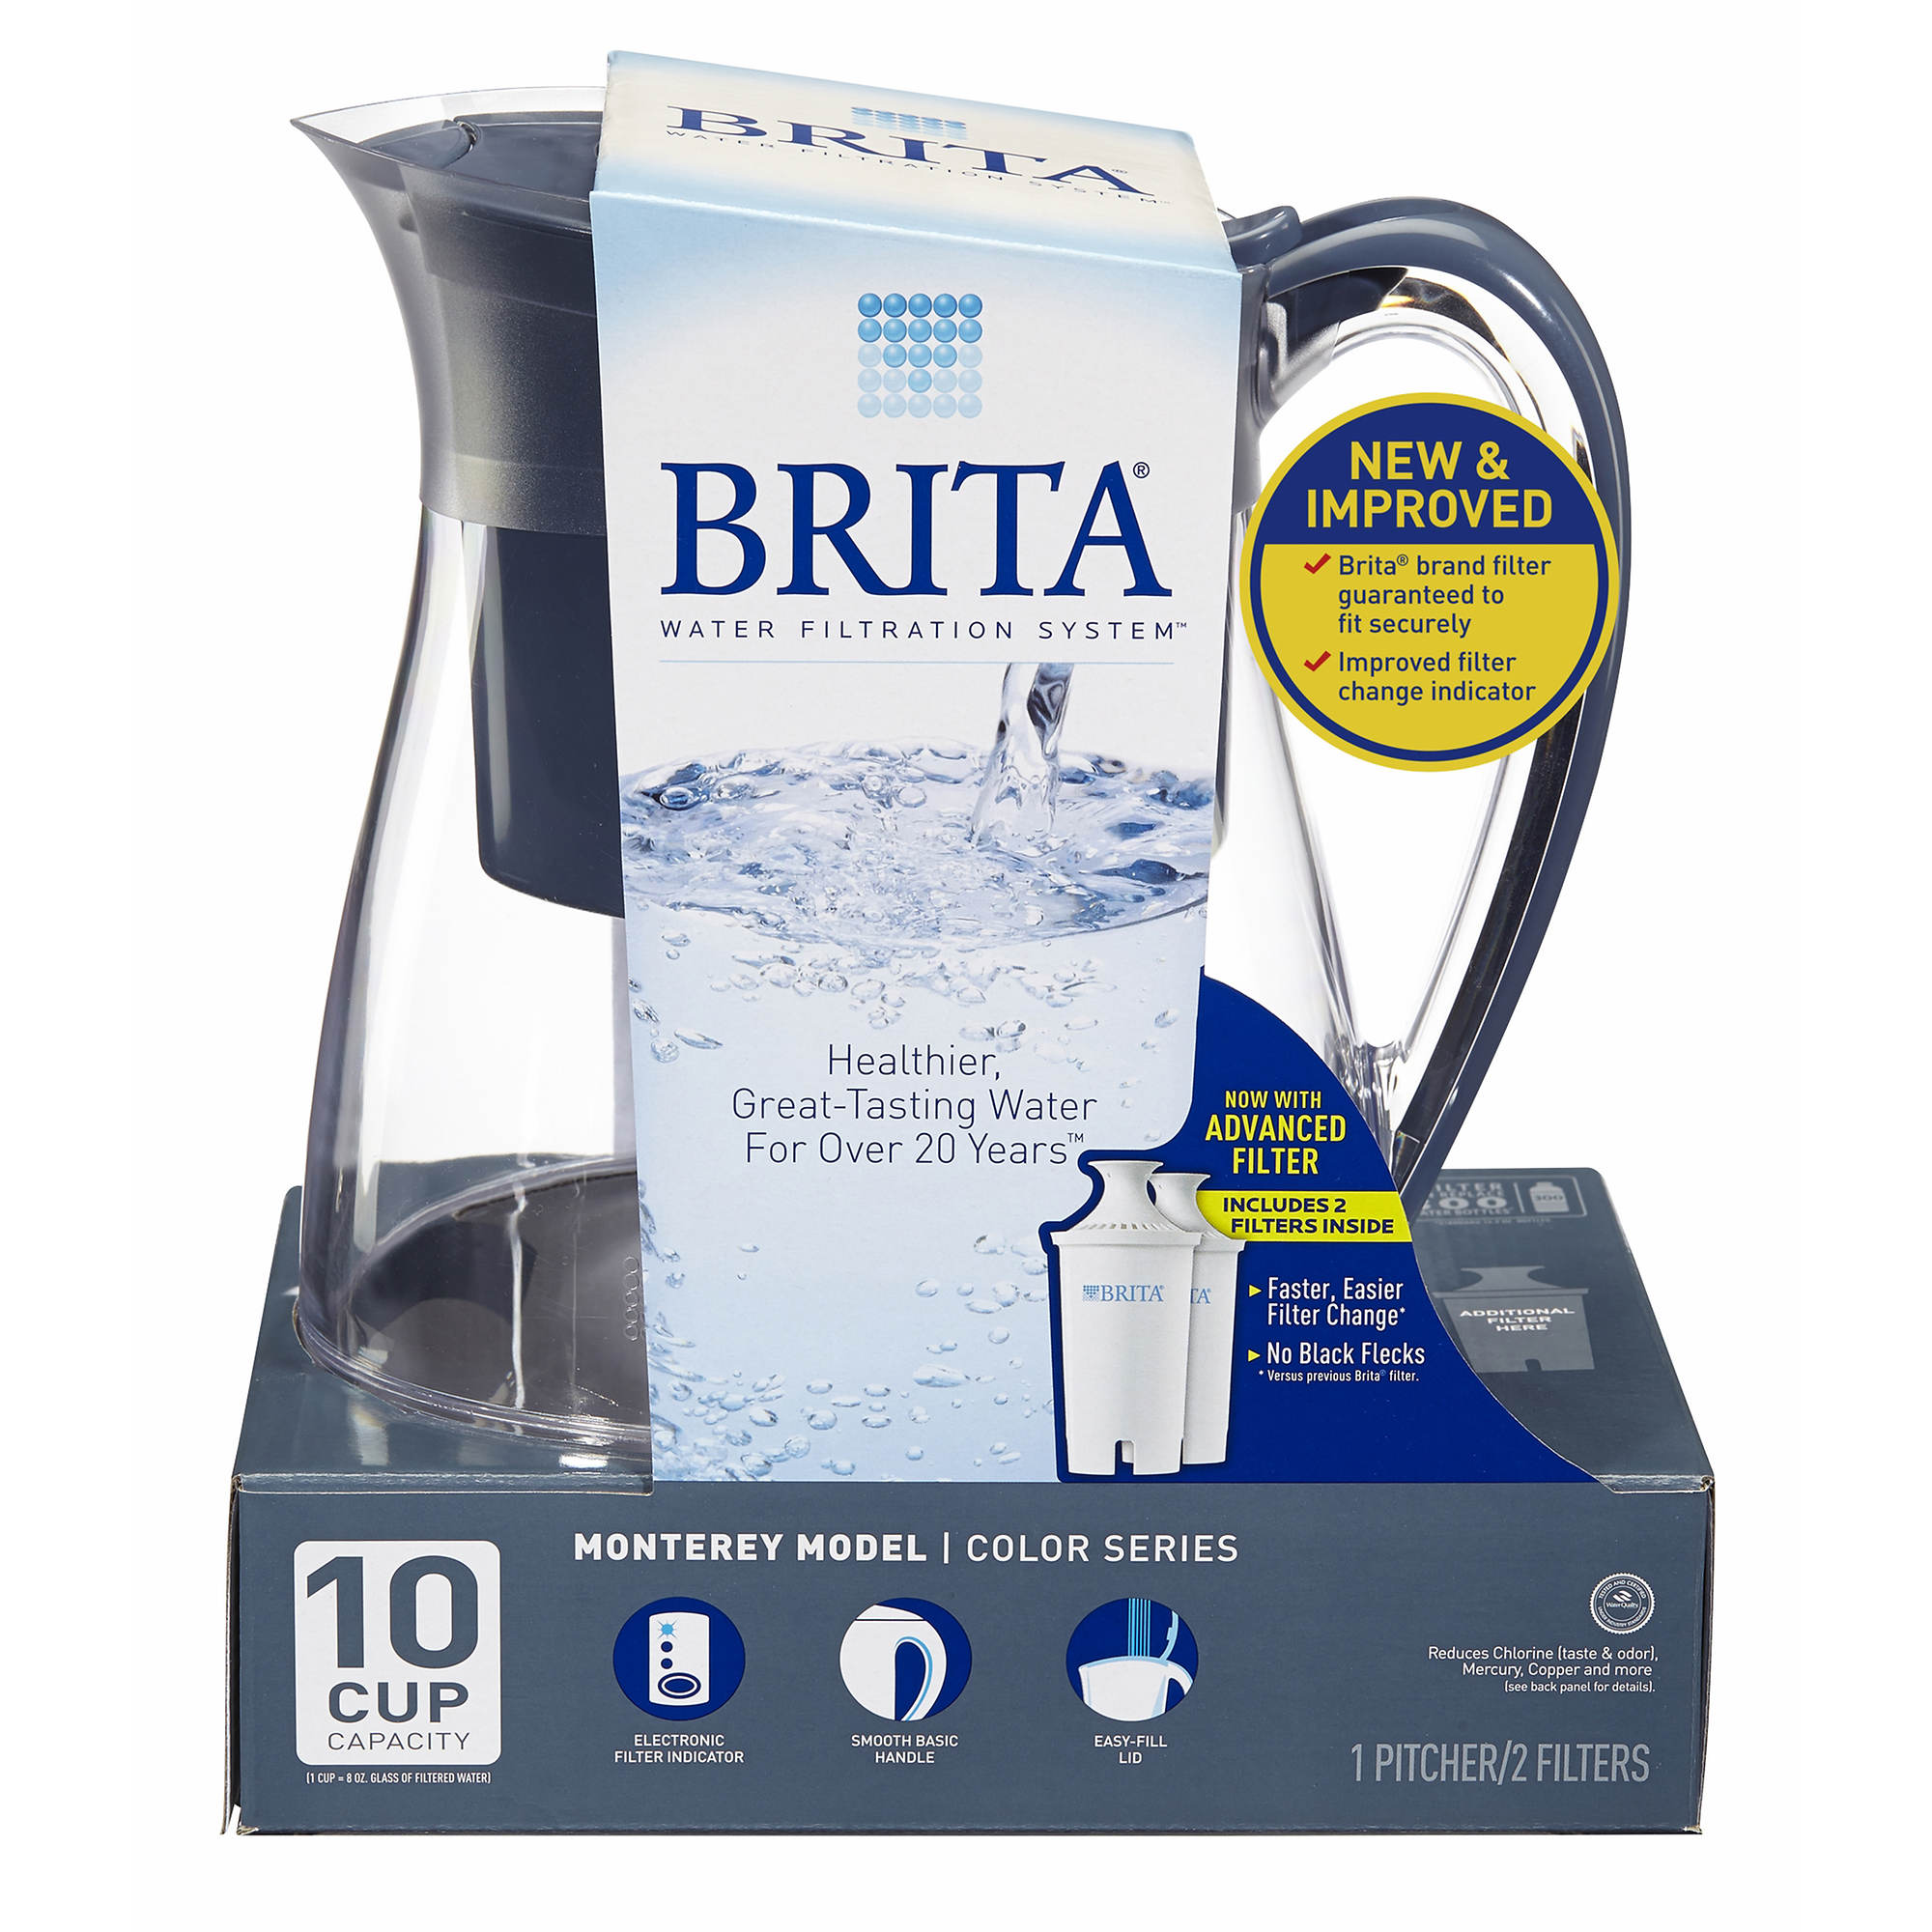 Shopping Tips for Brita: 1. The Brita 5 cup pitcher typically retails around $9. The best way to buy the product is with SmartSource's $4 off coupon.